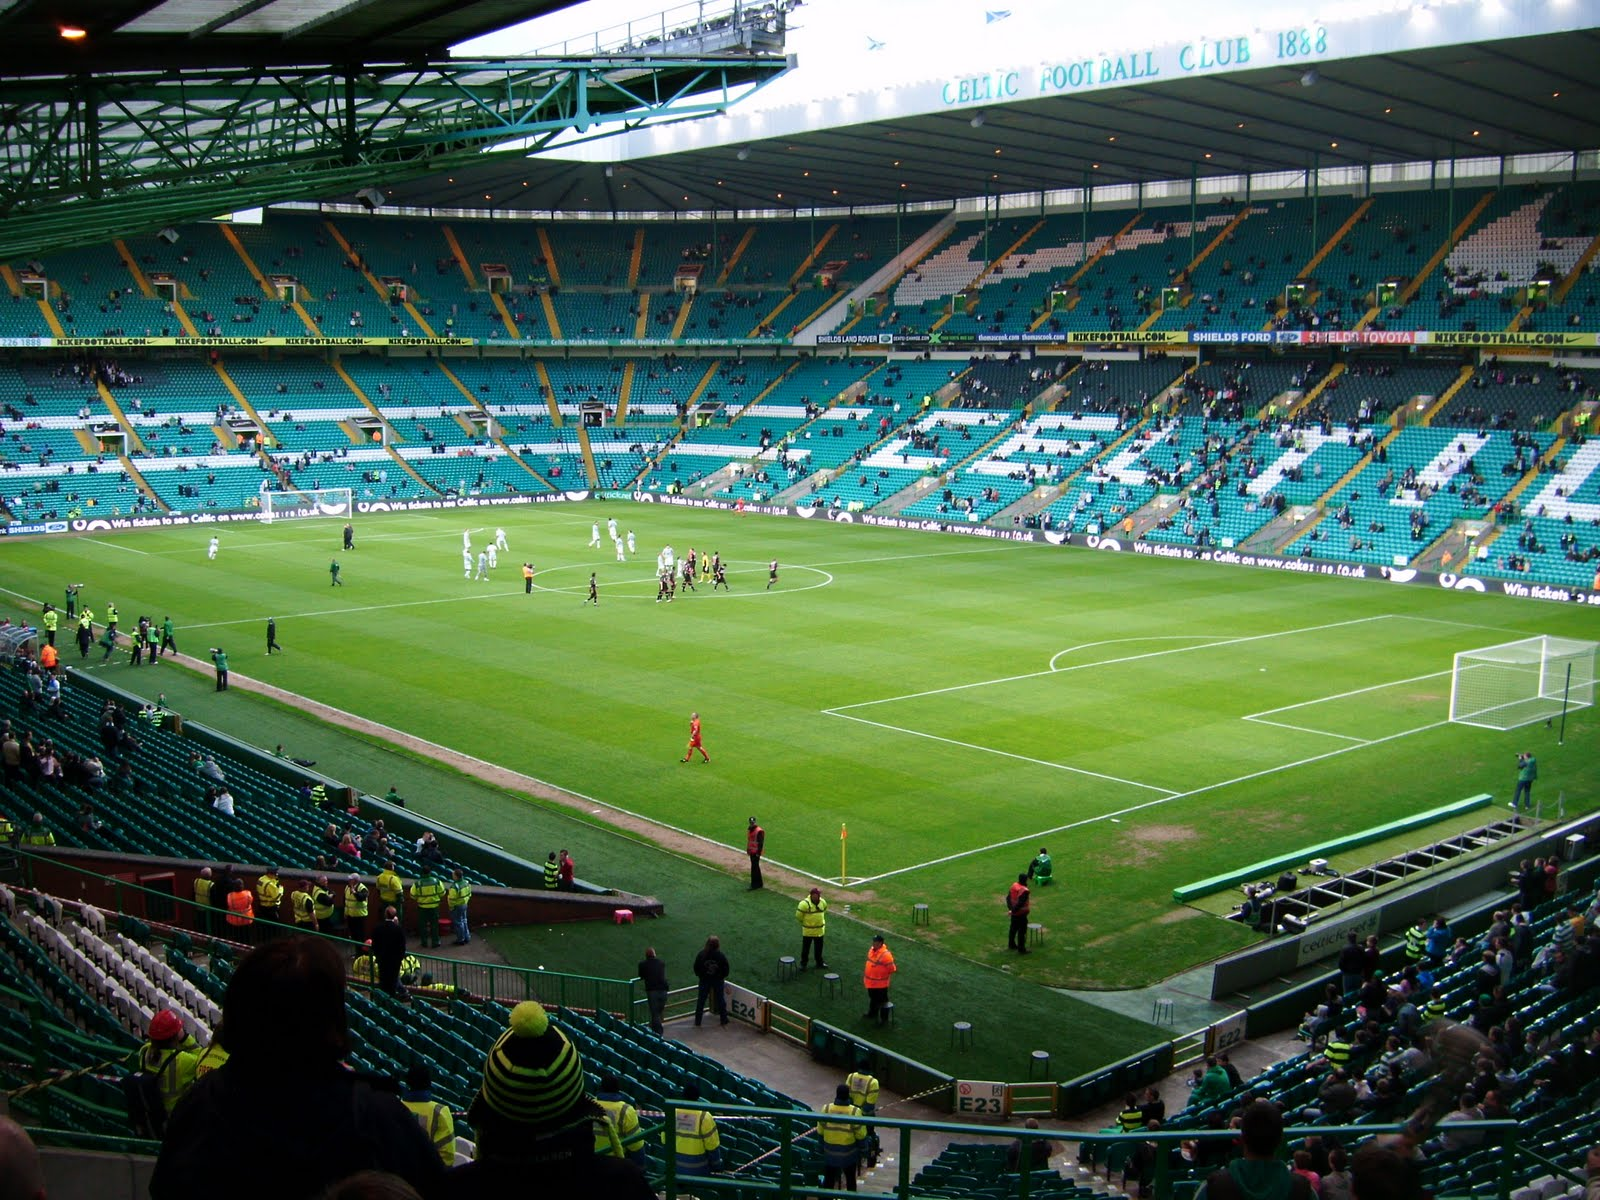 celtic-park-spectators-58352.jpg